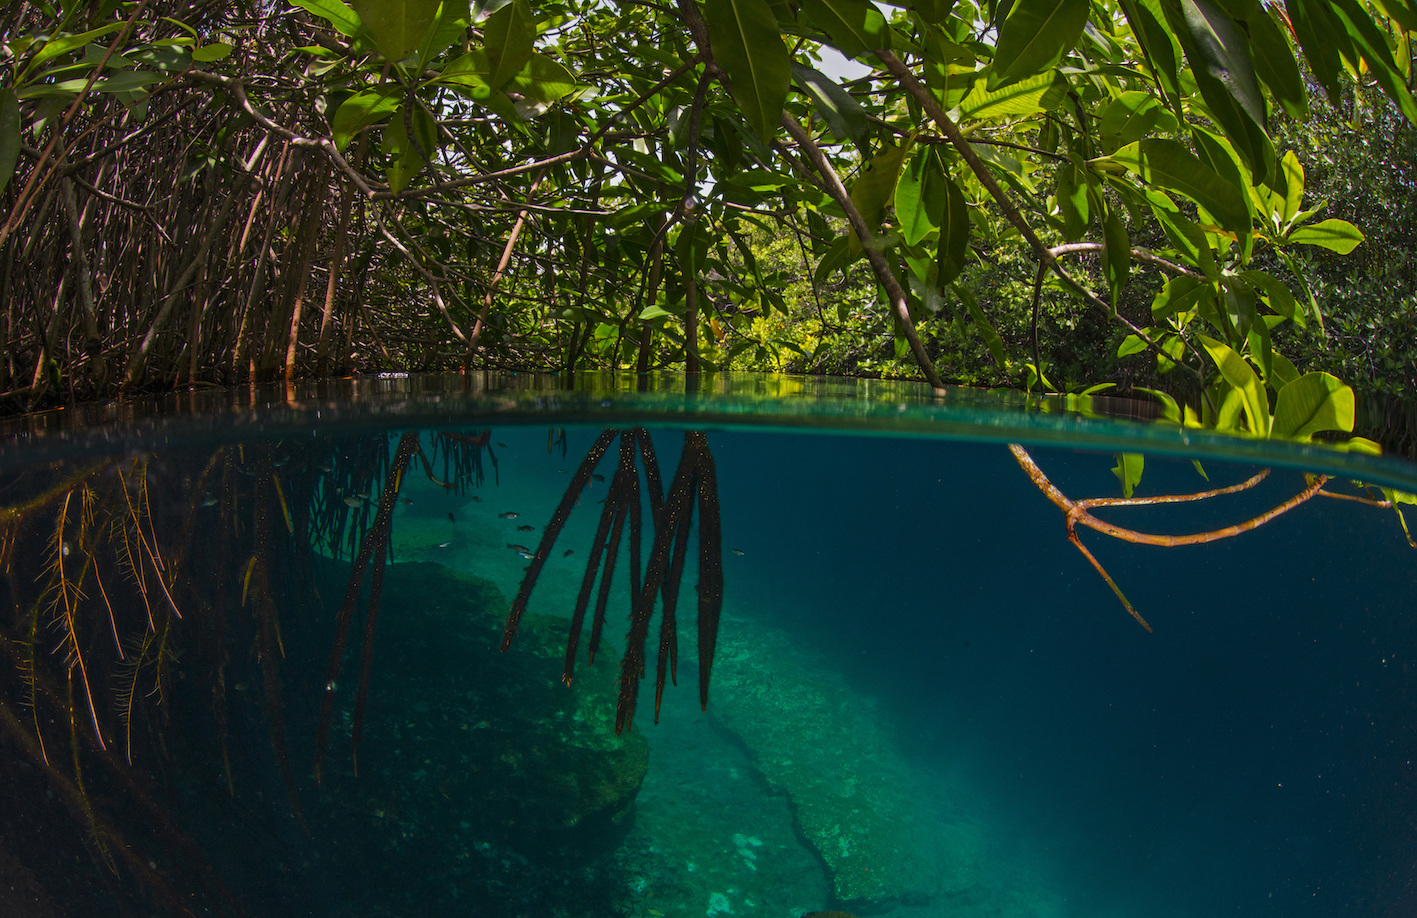 Surrounded by rhizophora, or true mangroves, whose web of roots can be seen deep in the water, the Casa Cenote is one of Mexico's most stunning sinkholes. Besides fantastic opportunities for snorkelling and scuba diving, visitors can go stand-up paddleboarding through the mangroves where they may come upon colourful birds and a variety of fish including barracudas and schools of tarpons. Lucky visitors could encounter a cormorant holding its breath as it dives underwater to catch its dinner.